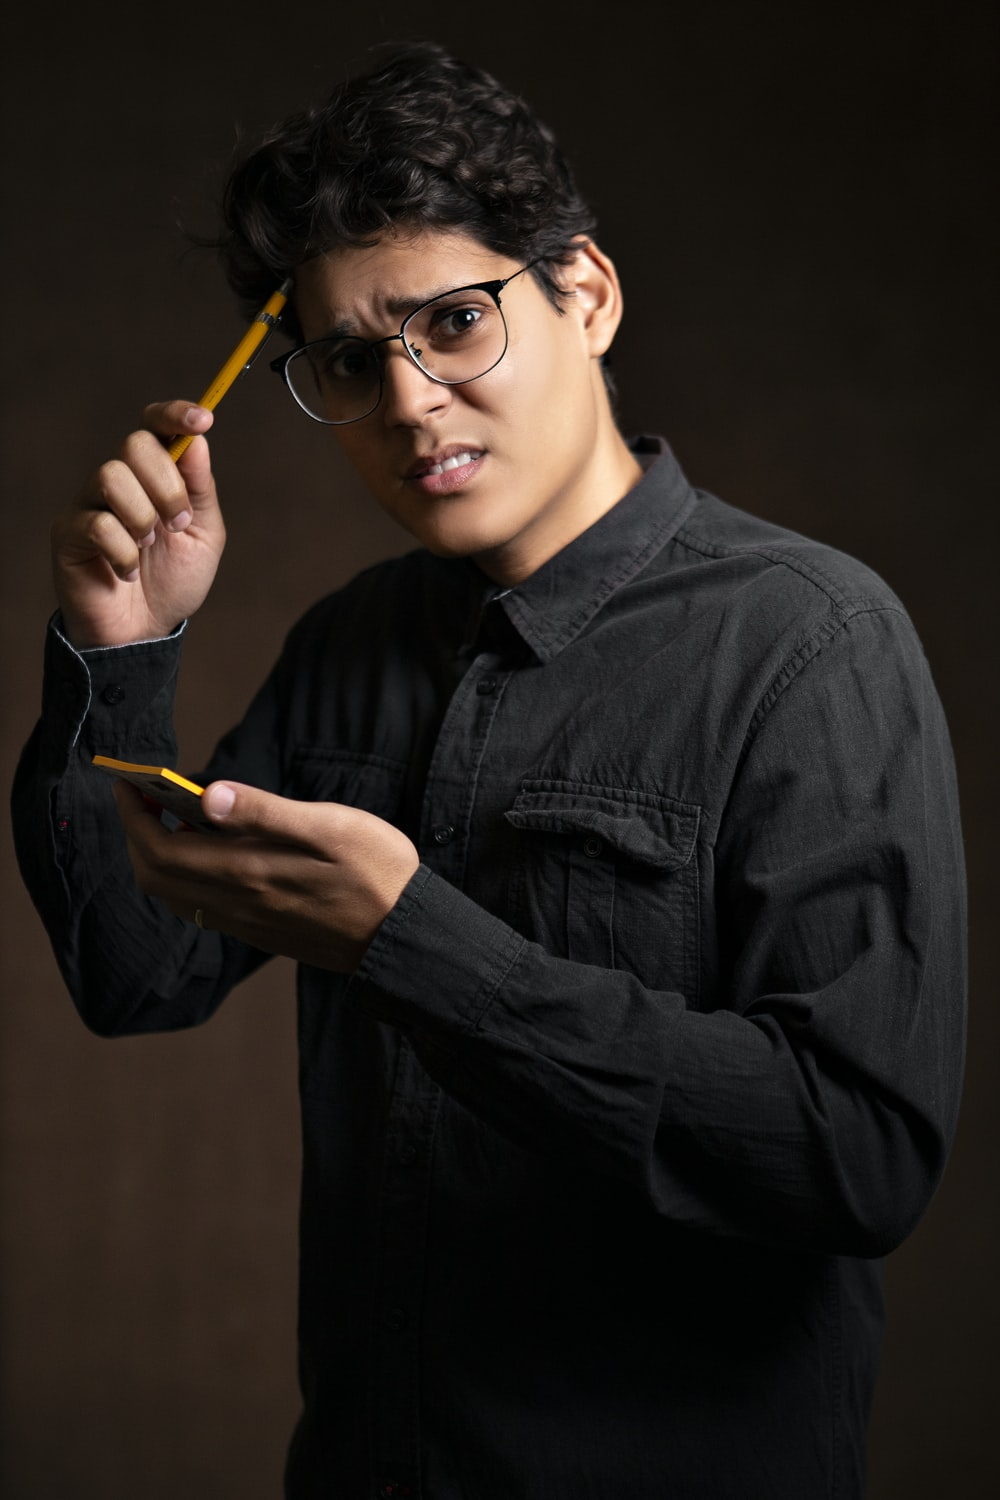 man wearing black denim jacket holding pencil and yellow sticky notes standing while showing confused reaction